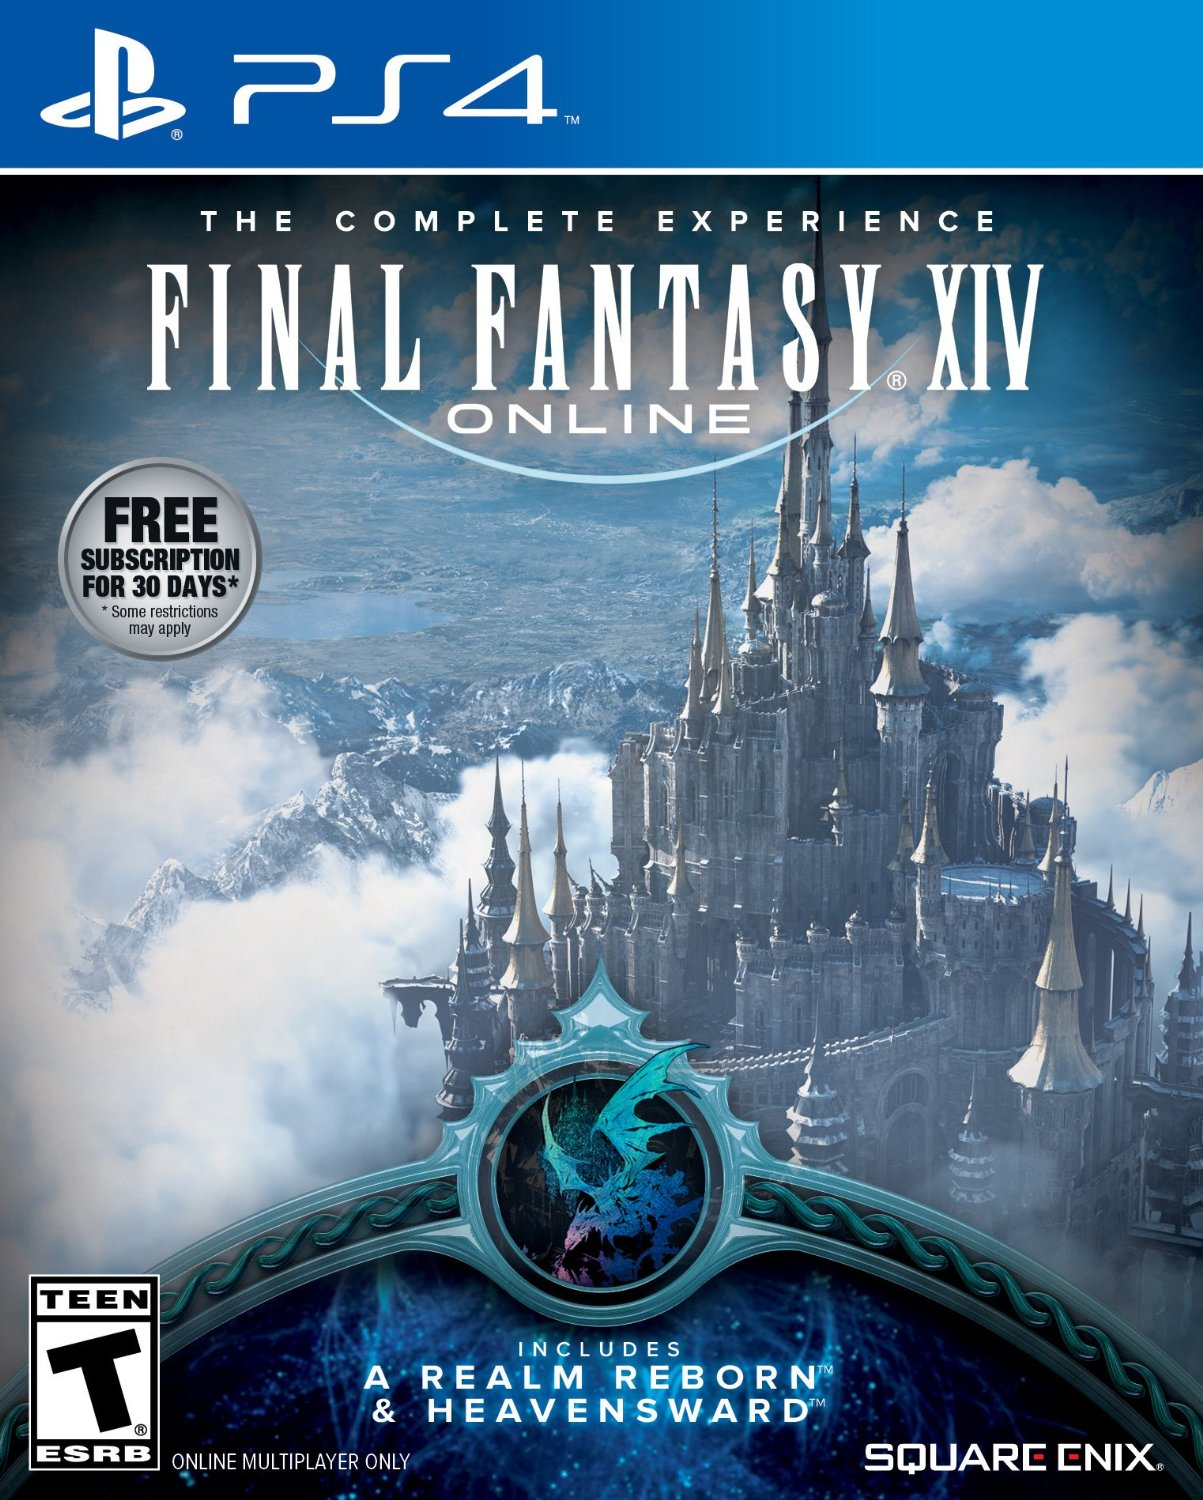 PS4 Final Fantasy XIV Online (PlayStation 4)